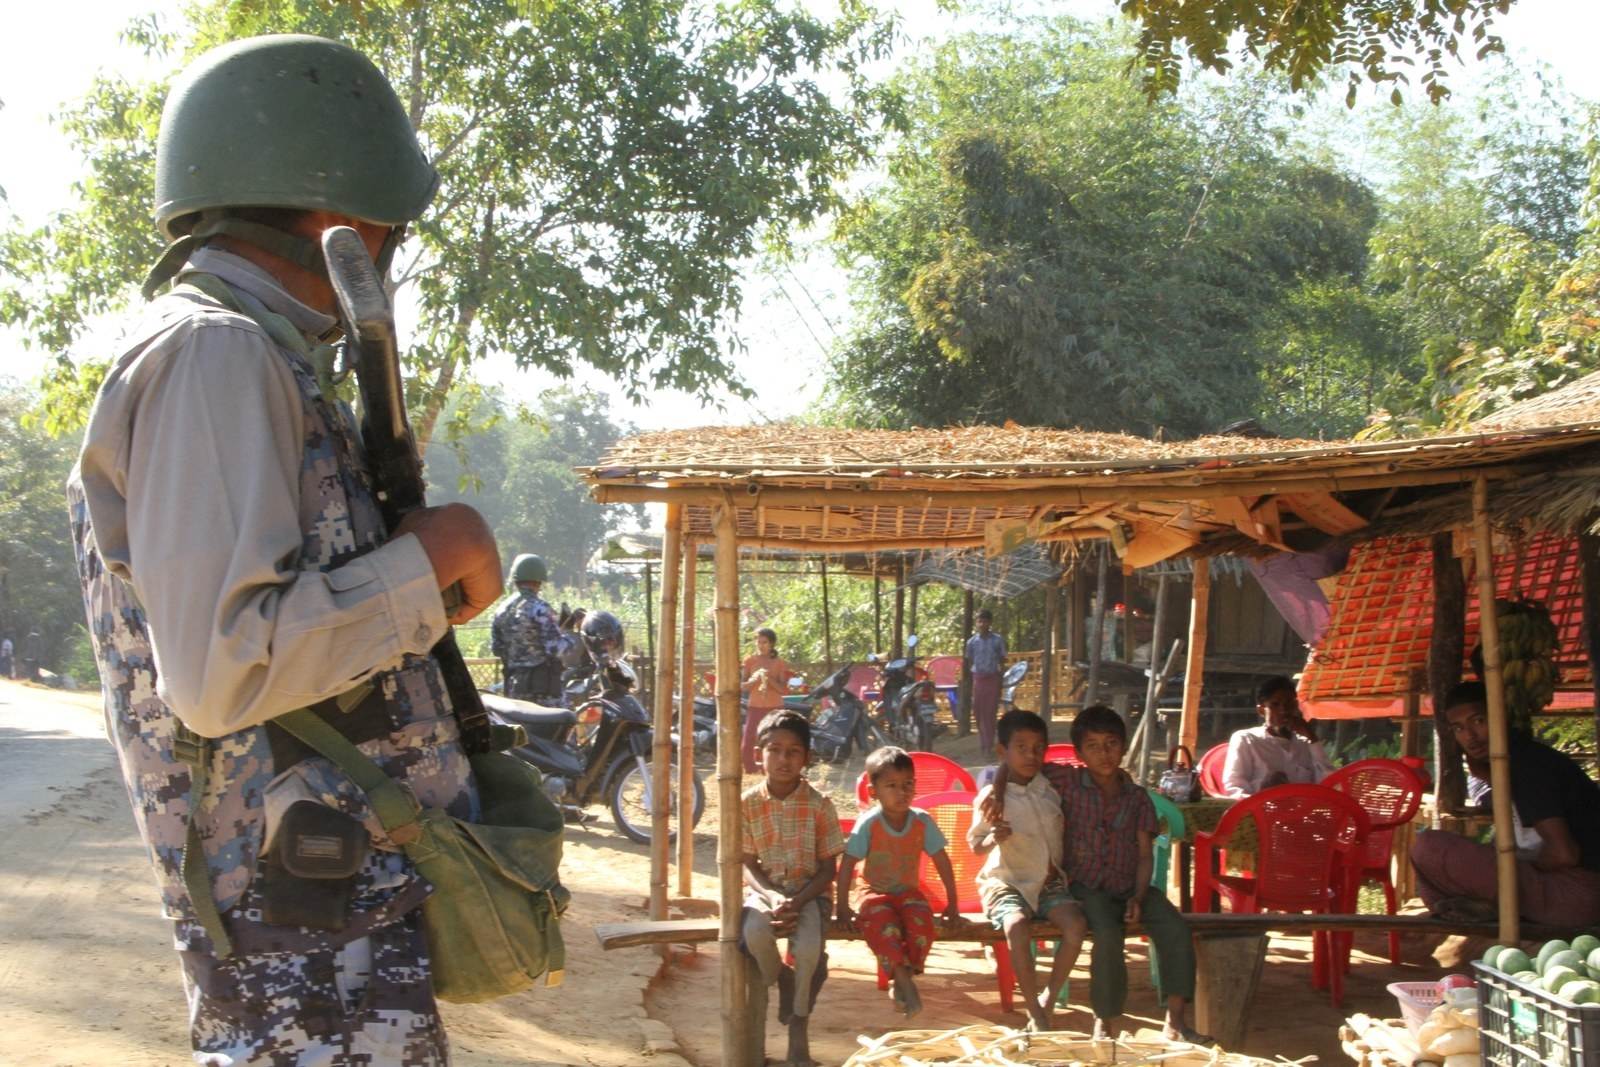 A Myanmar border guard policeman stand near a group of Rohingya Muslims during a government-organized visit for journalists in Buthidaung townships in the restive Rakhine state on January 25, 2019.